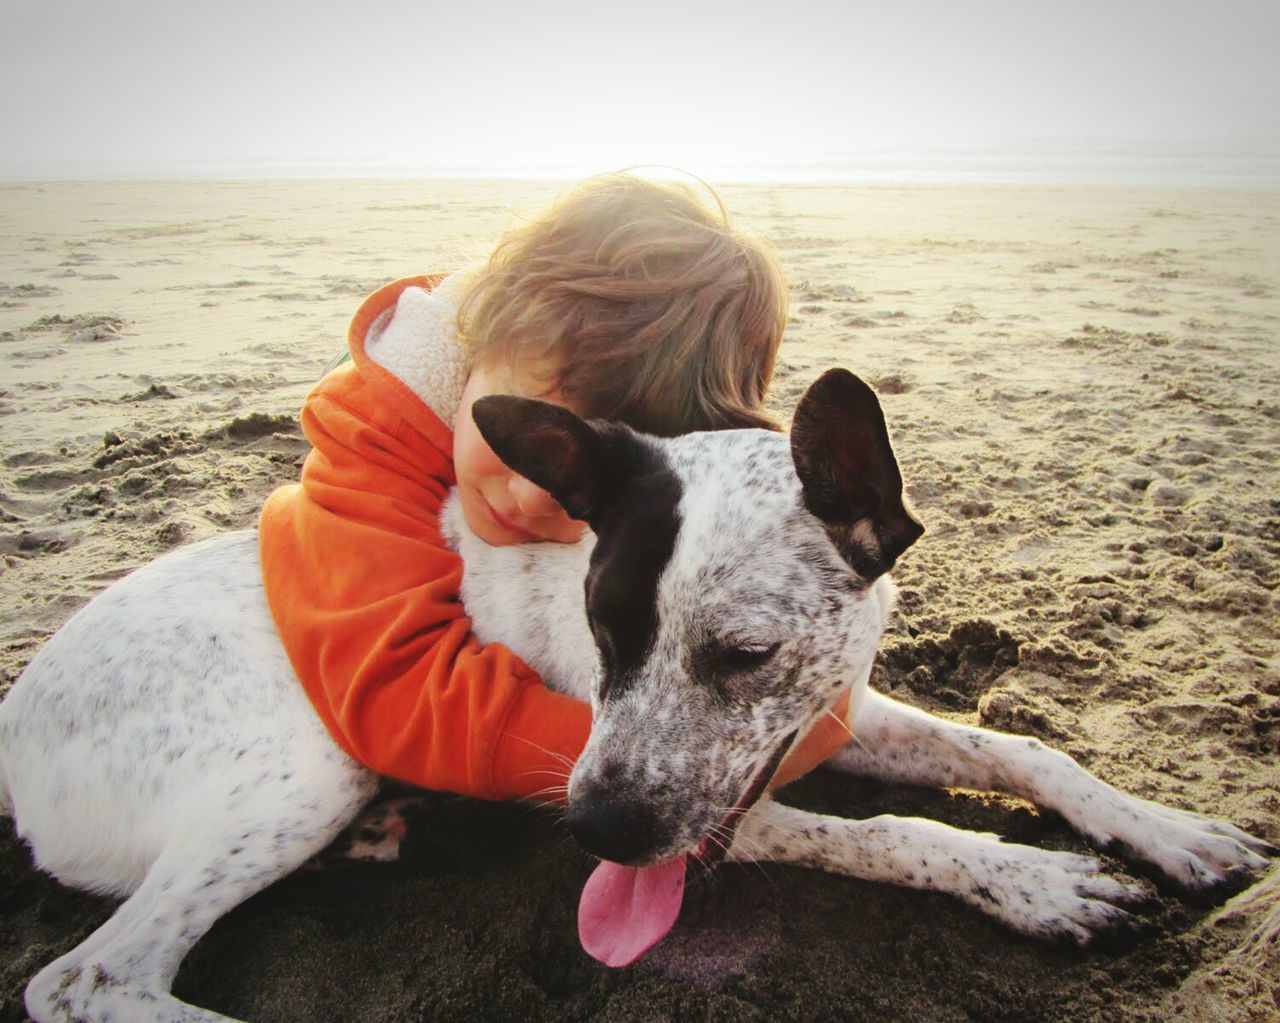 beach, dog, sea, pets, domestic animals, sand, animal themes, one animal, horizon over water, shore, mammal, outdoors, day, nature, standing, one person, real people, water, sky, people